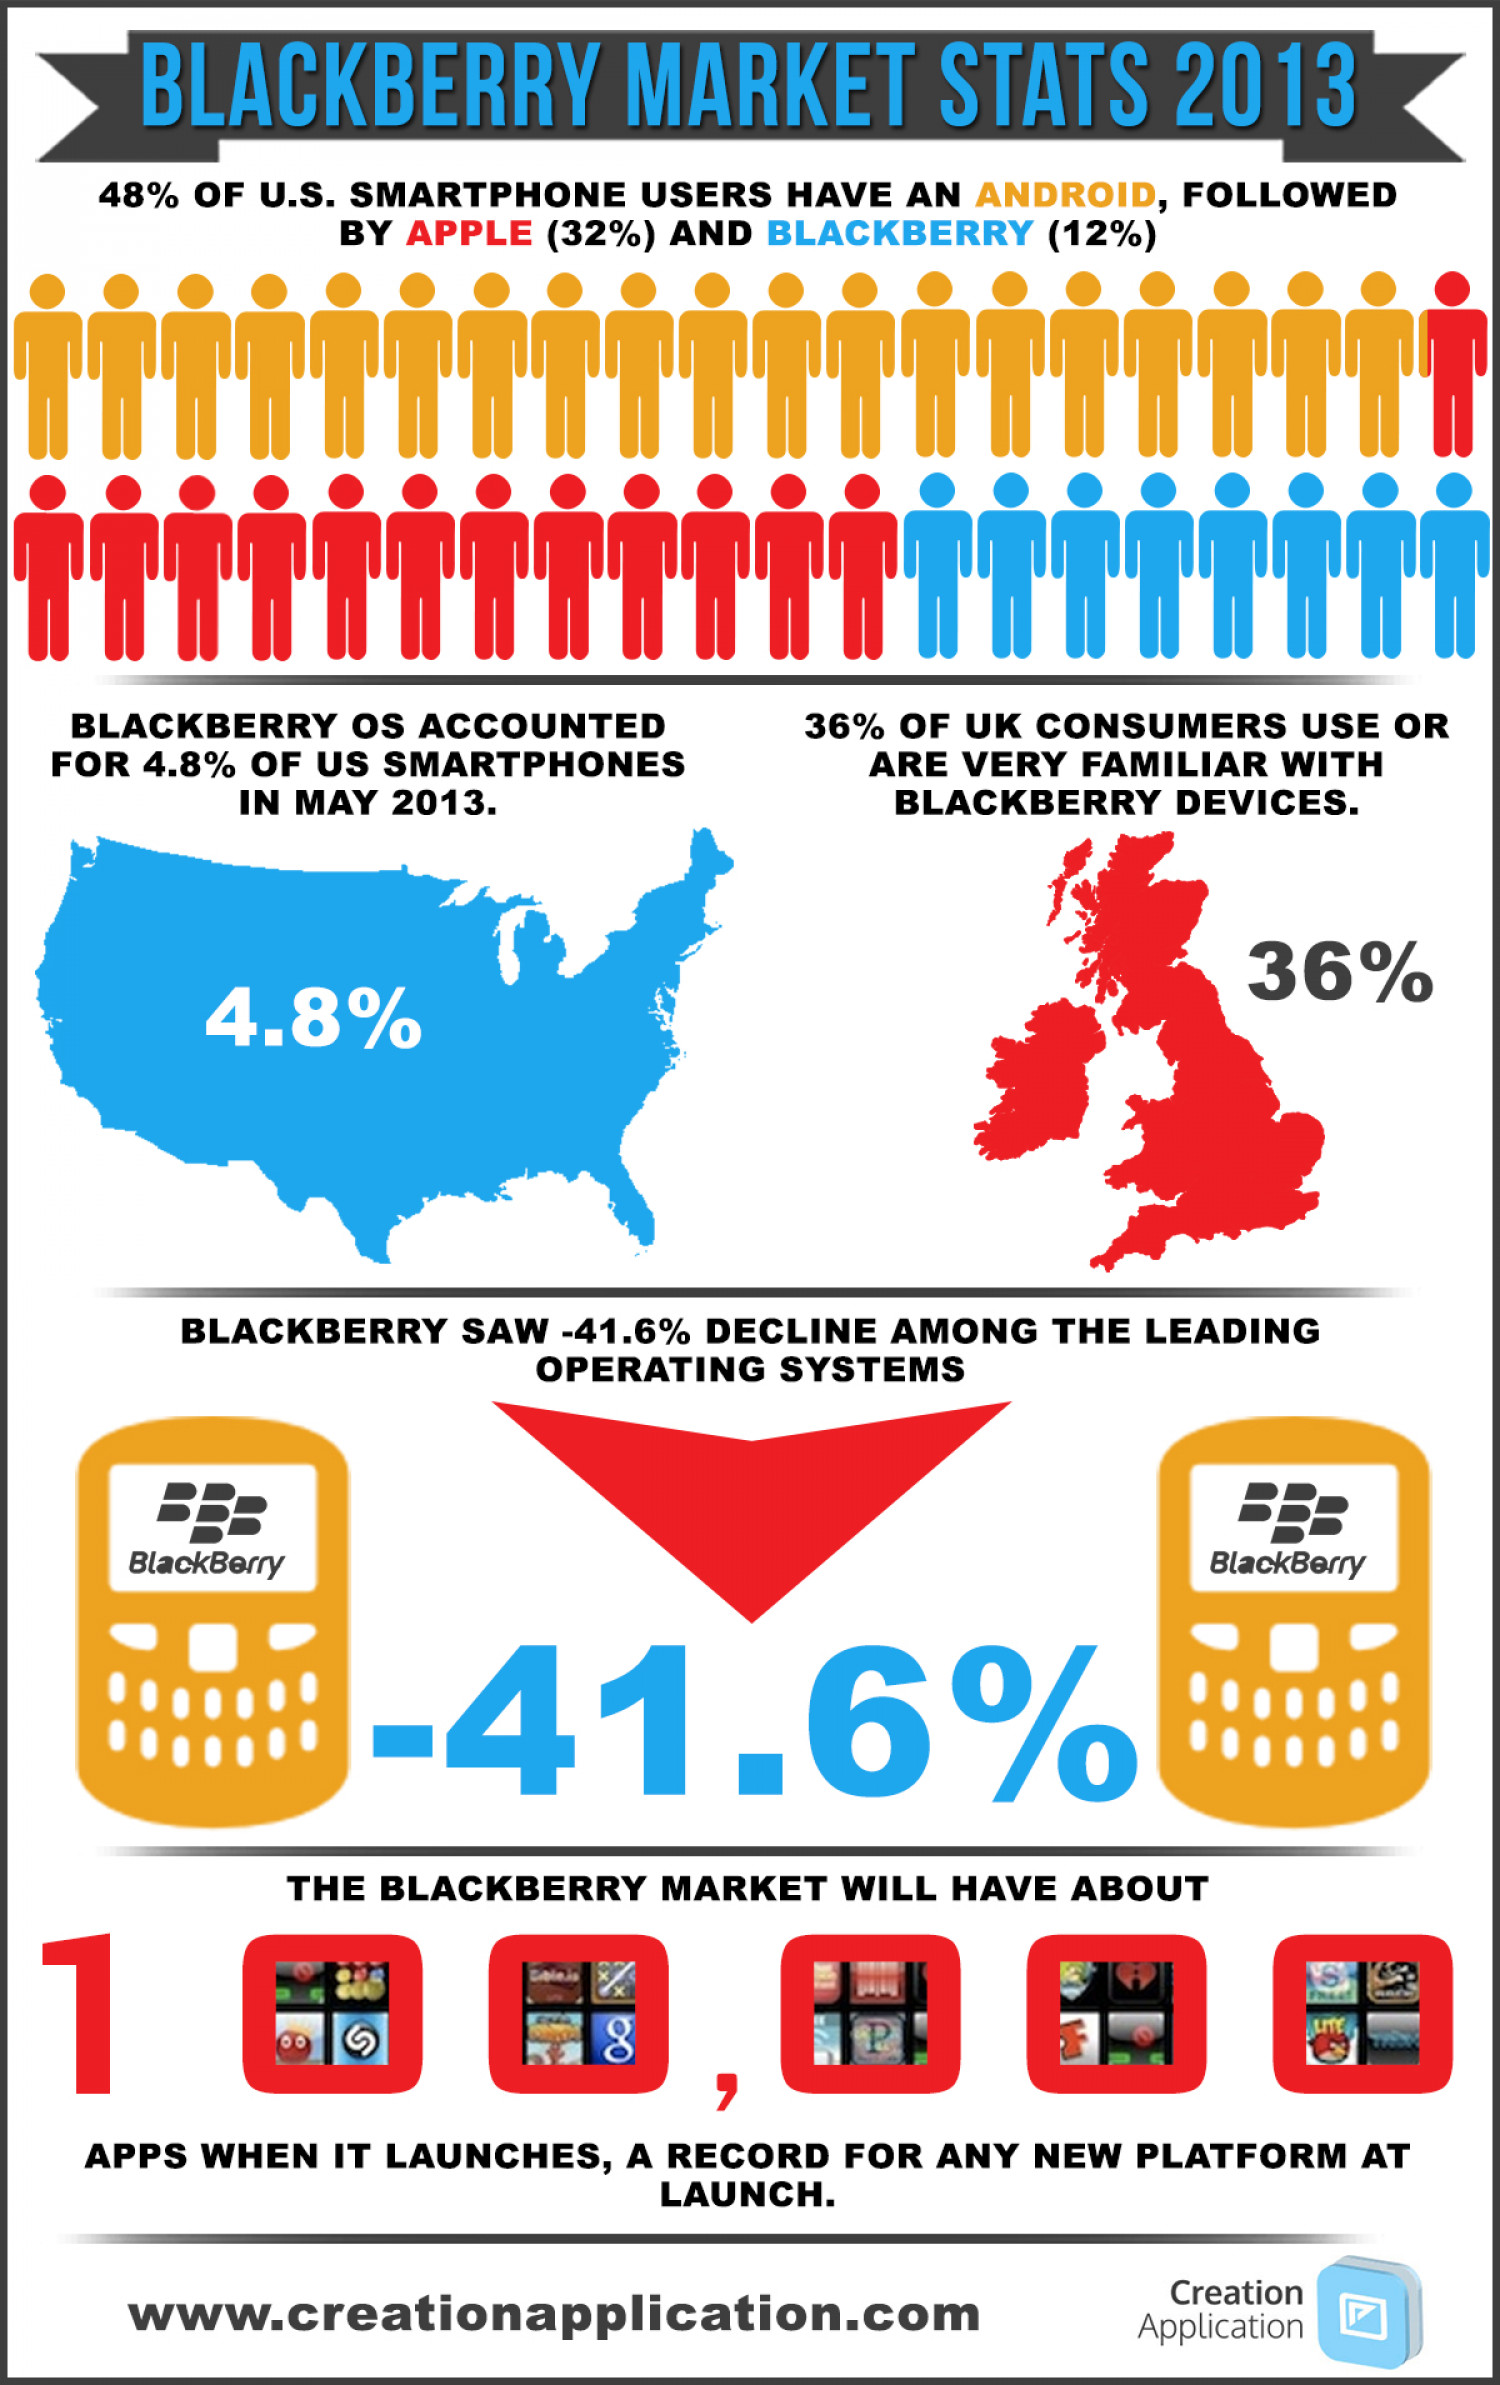 BlackBerry Market Stats 2013/14 Infographic Infographic